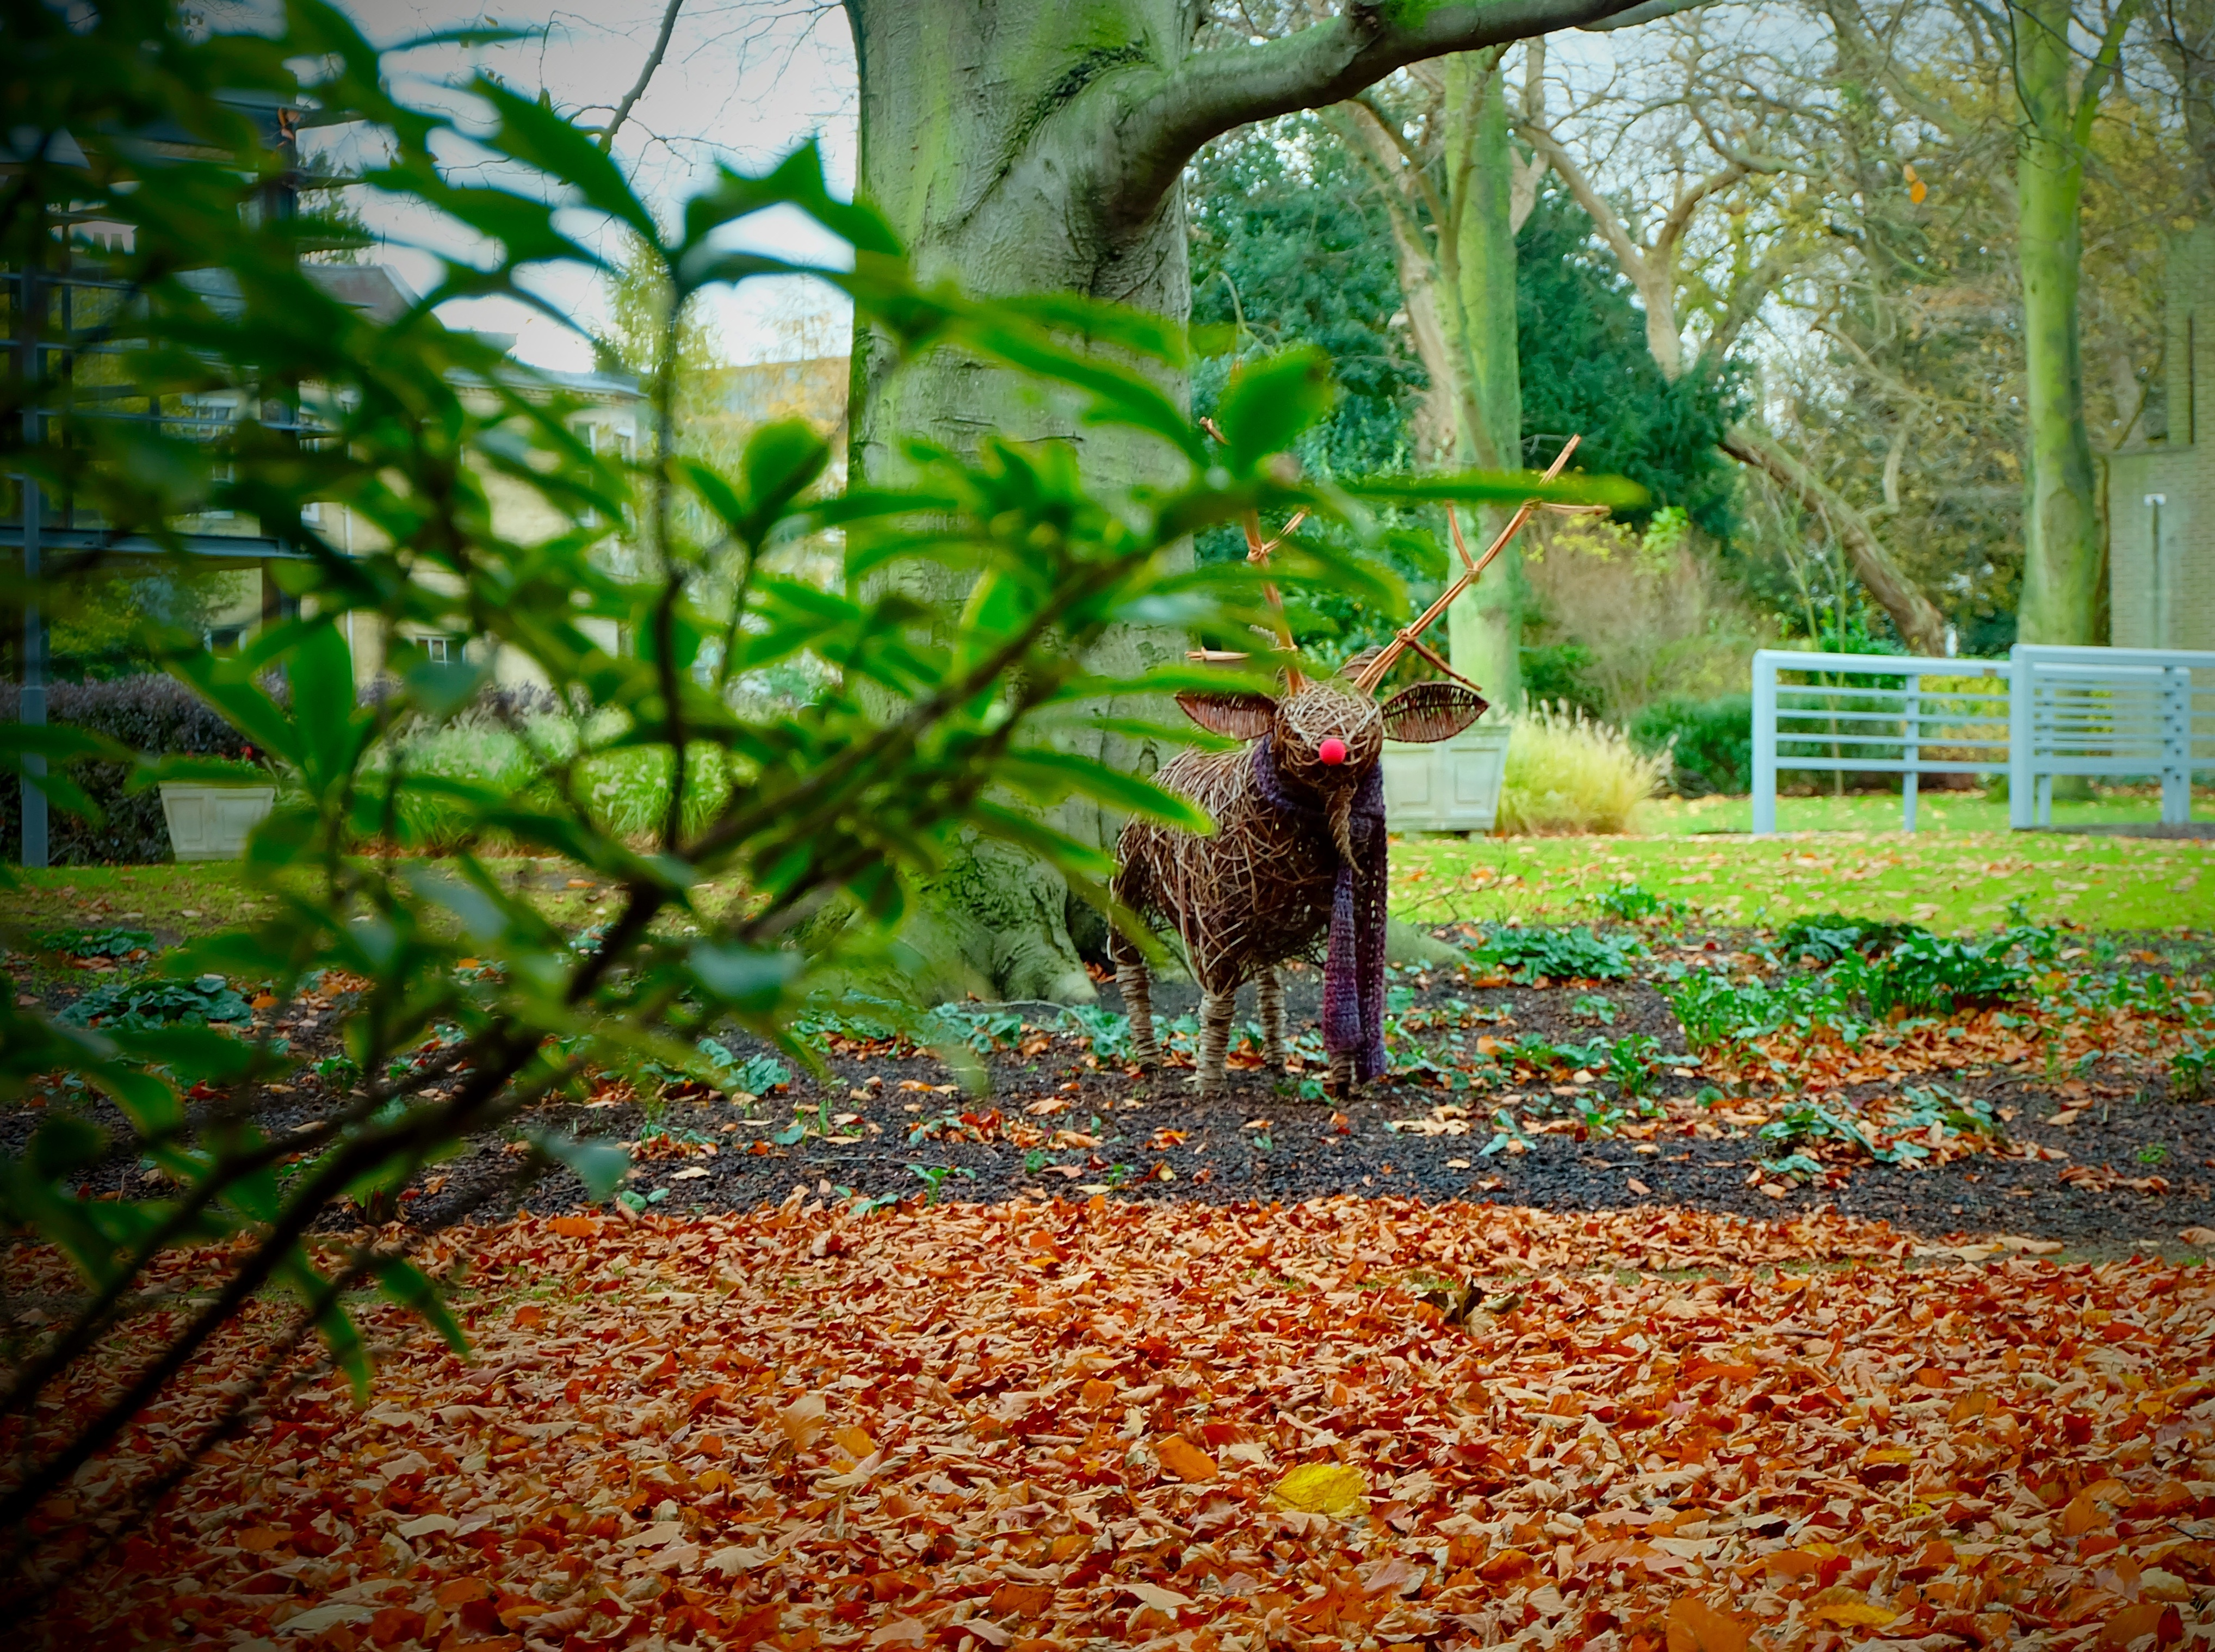 Billy the Goat in the autumn leaves